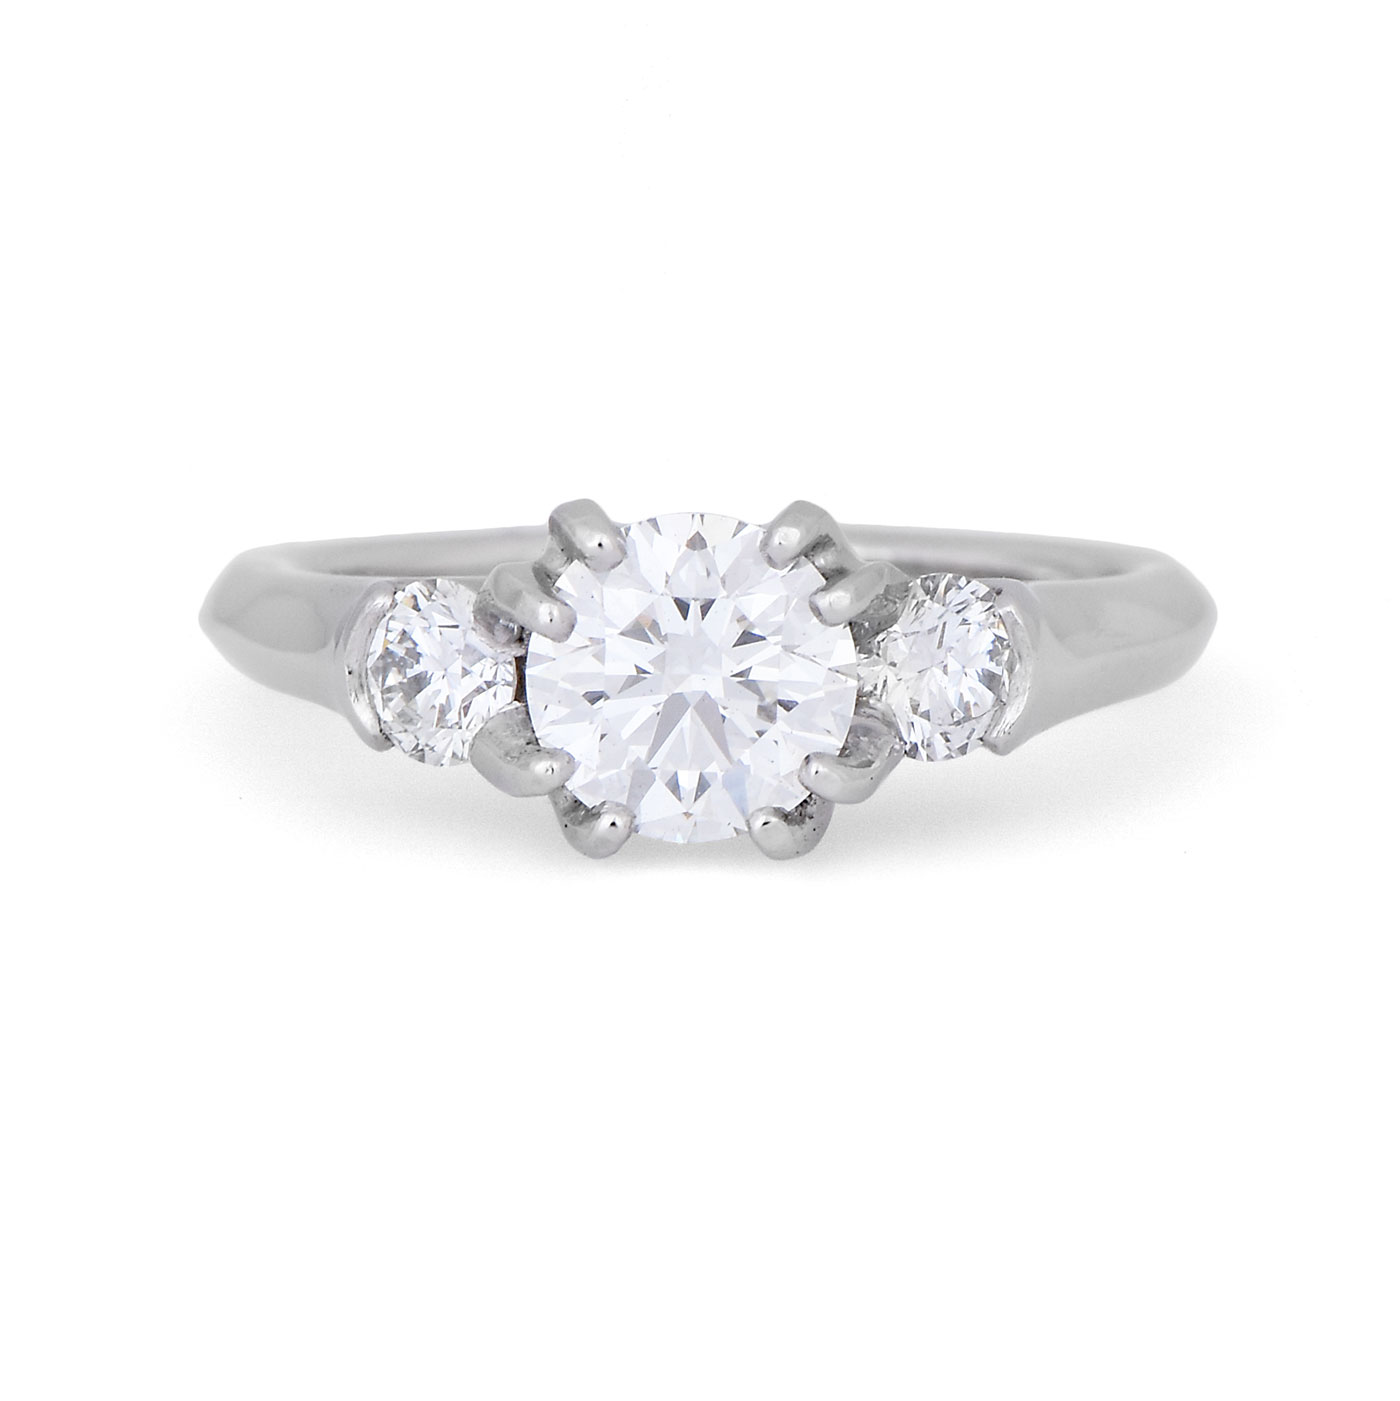 C7991 Double Prong Diamond Engagement Ring